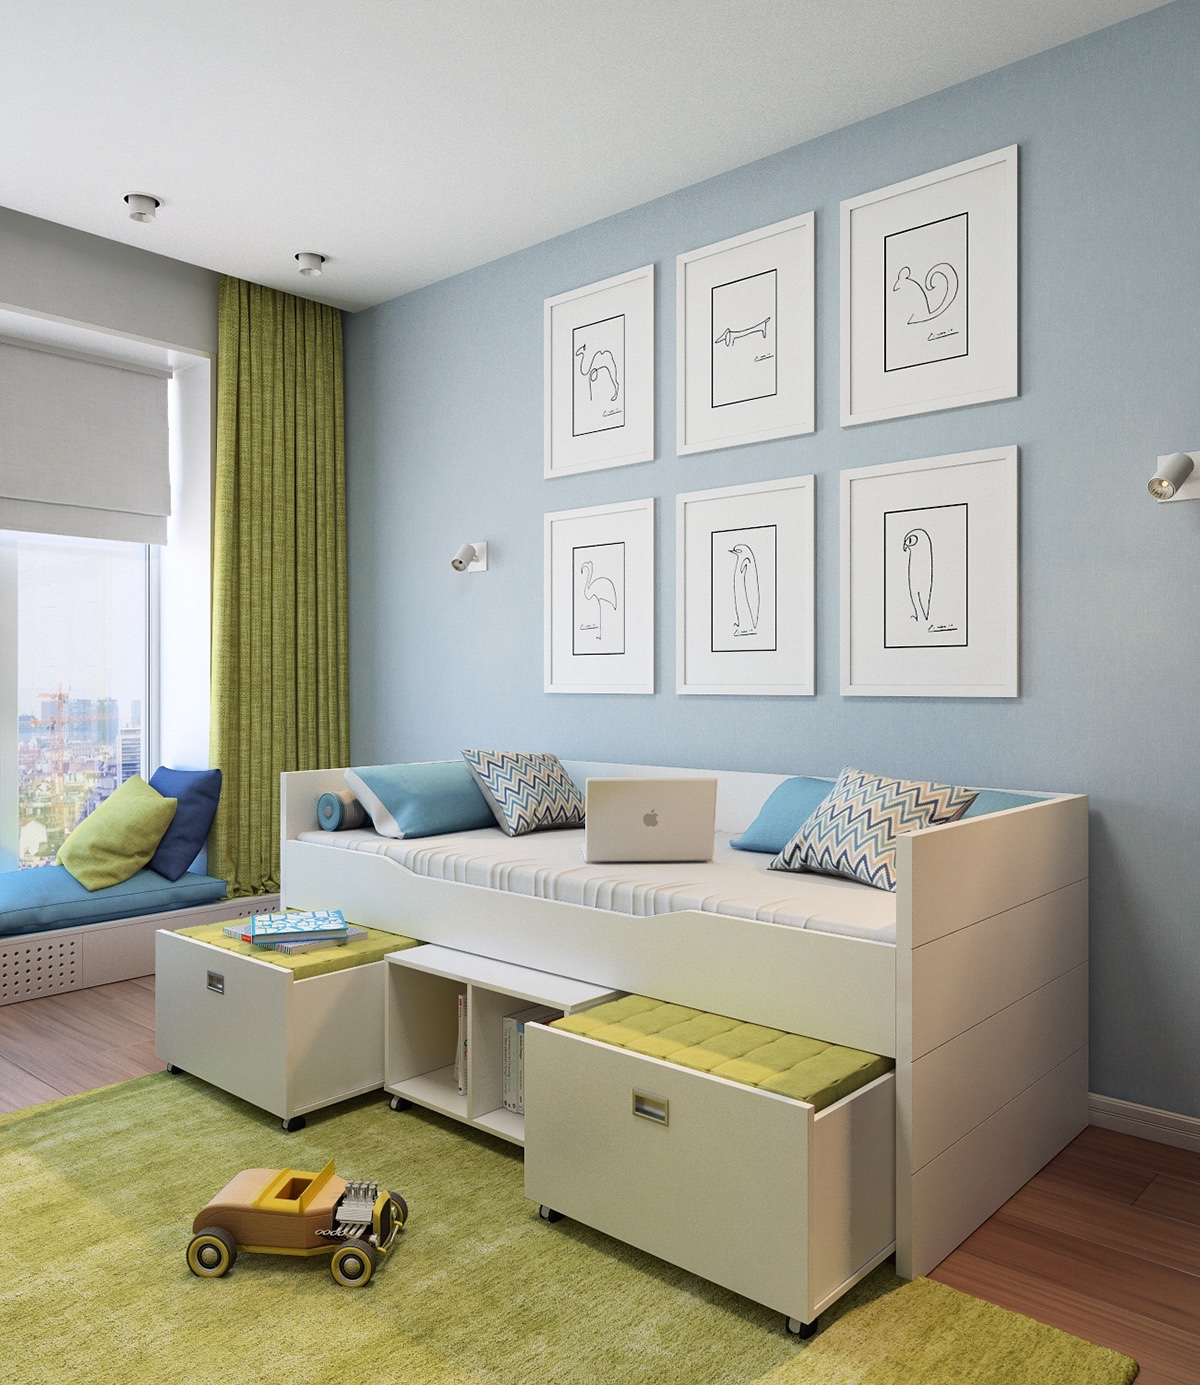 coordinating-wall-art-for-kids